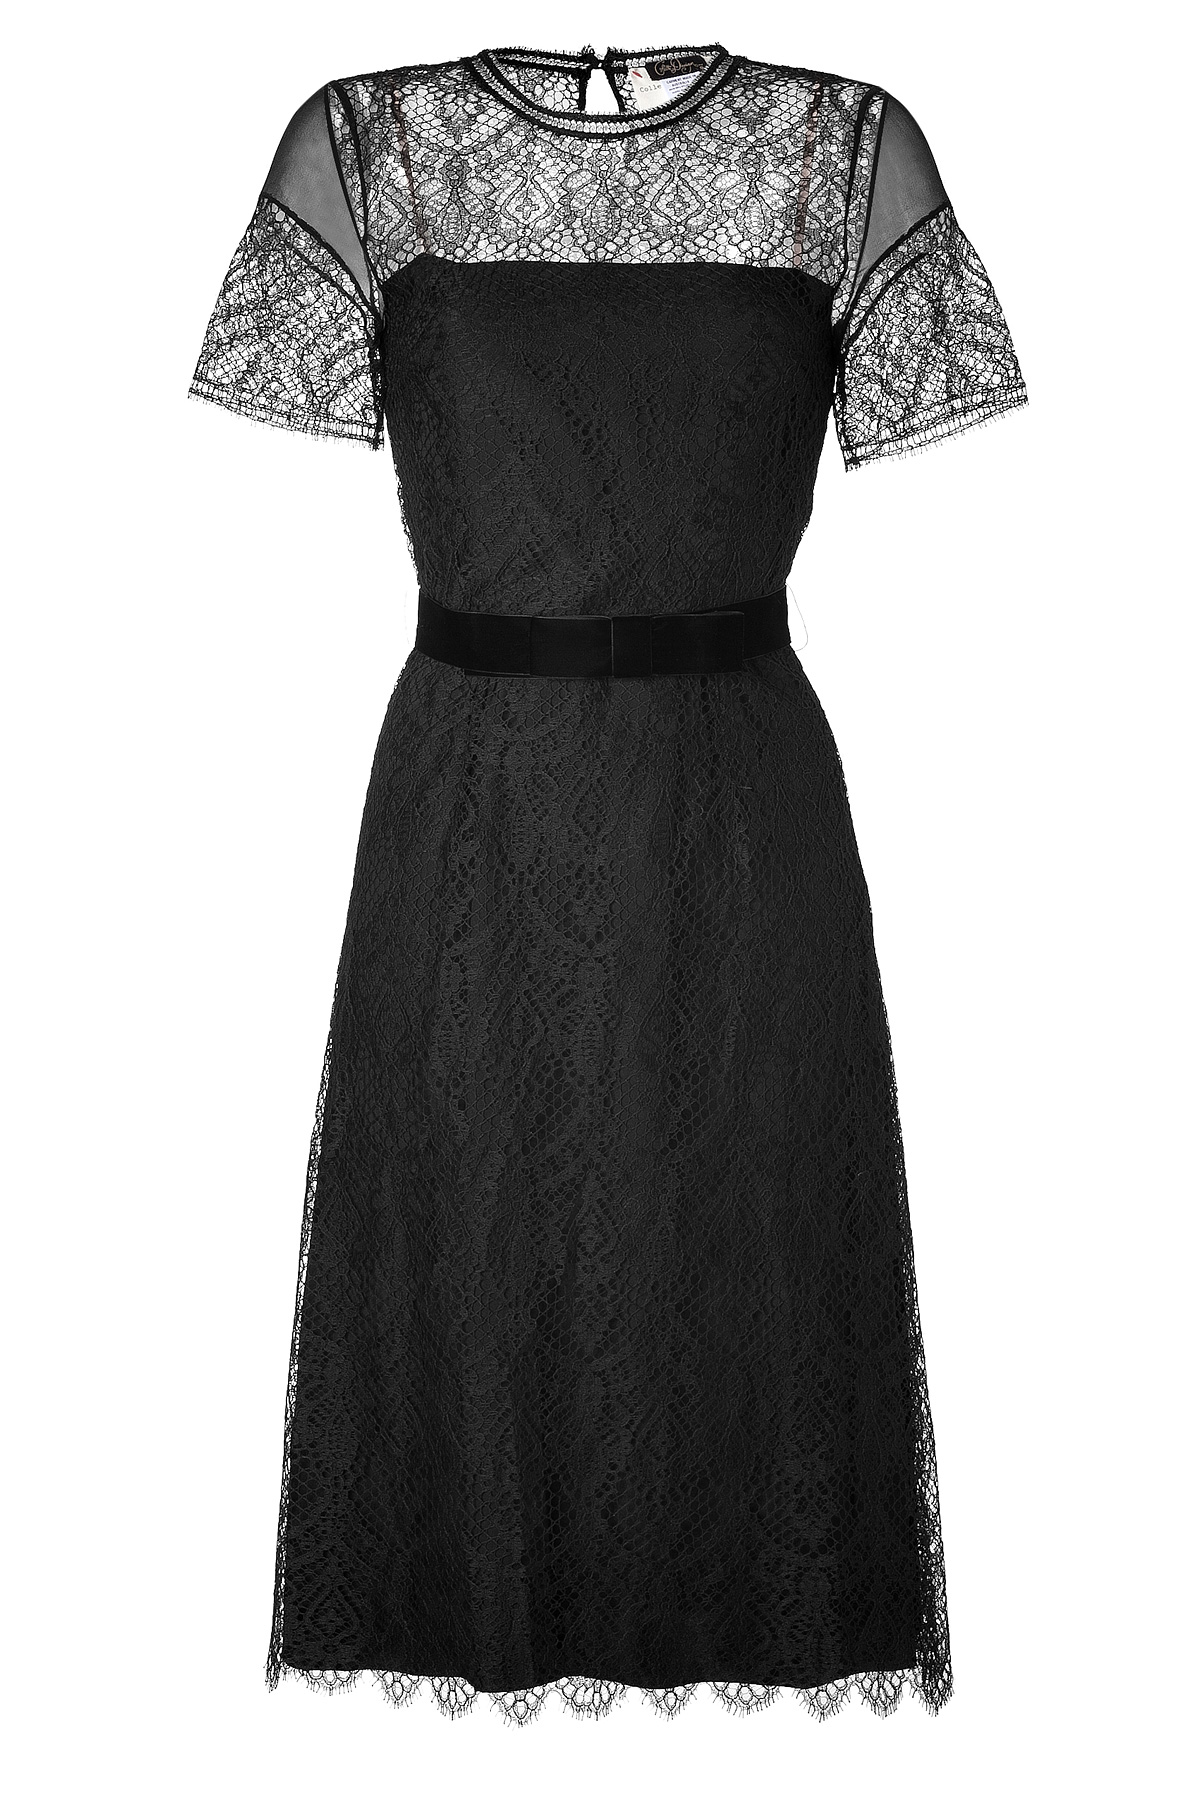 Stylebop Collette Dinnagan Fern Lace Dress